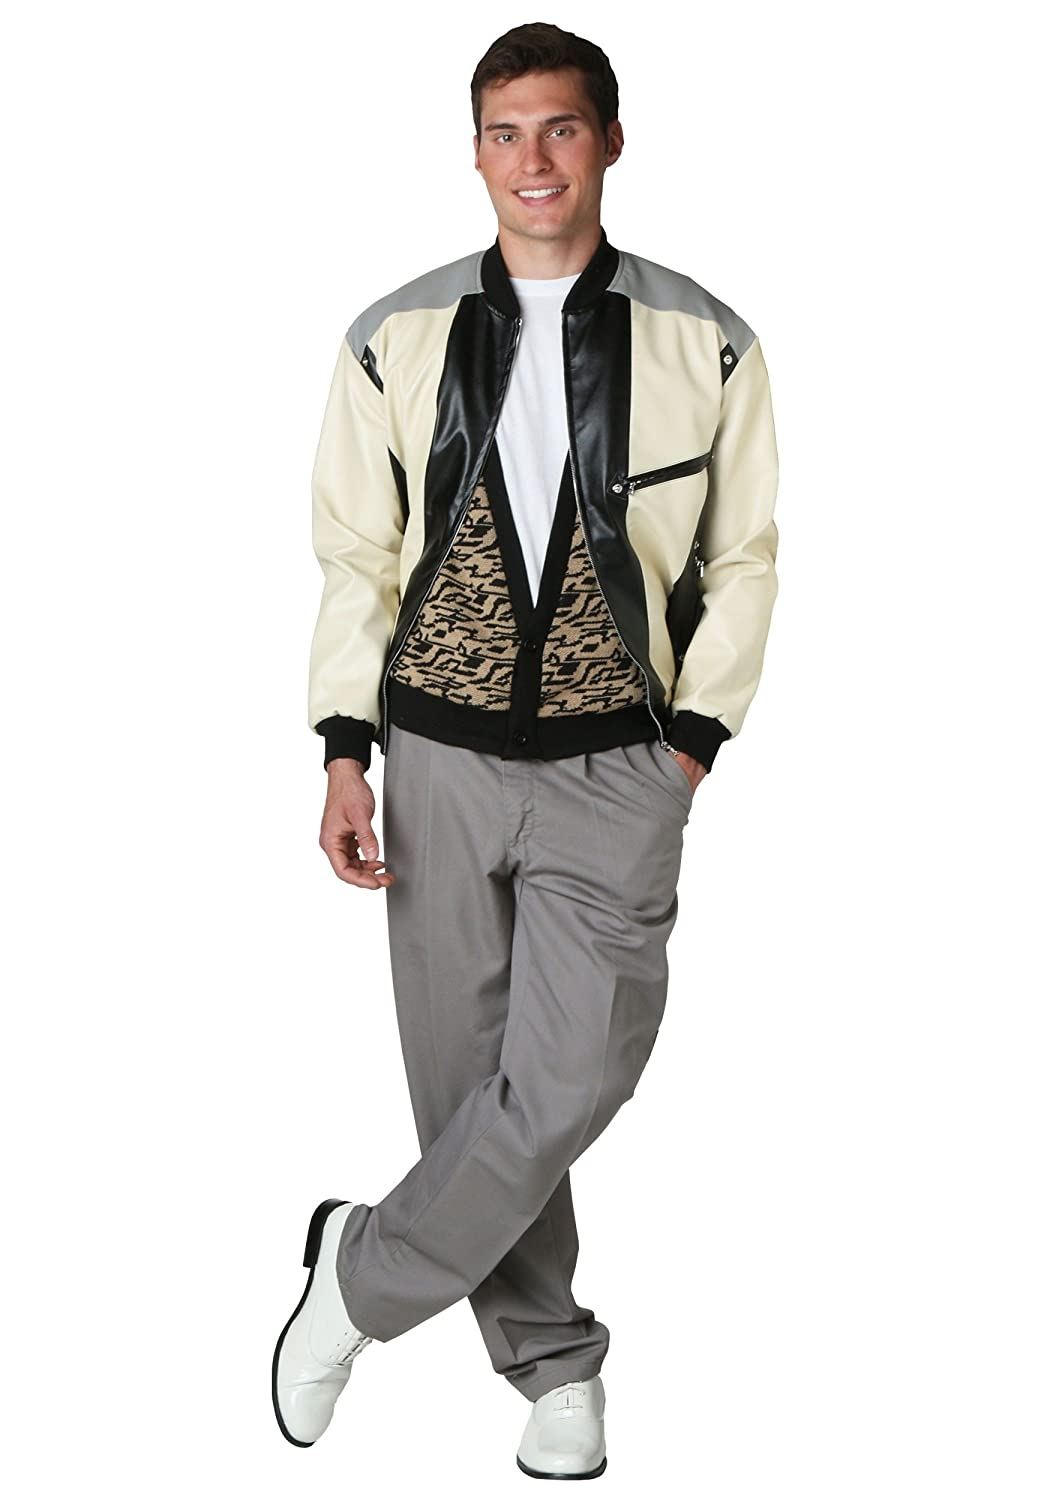 Plus Size Ferris Bueller Fancy dress costume 2X